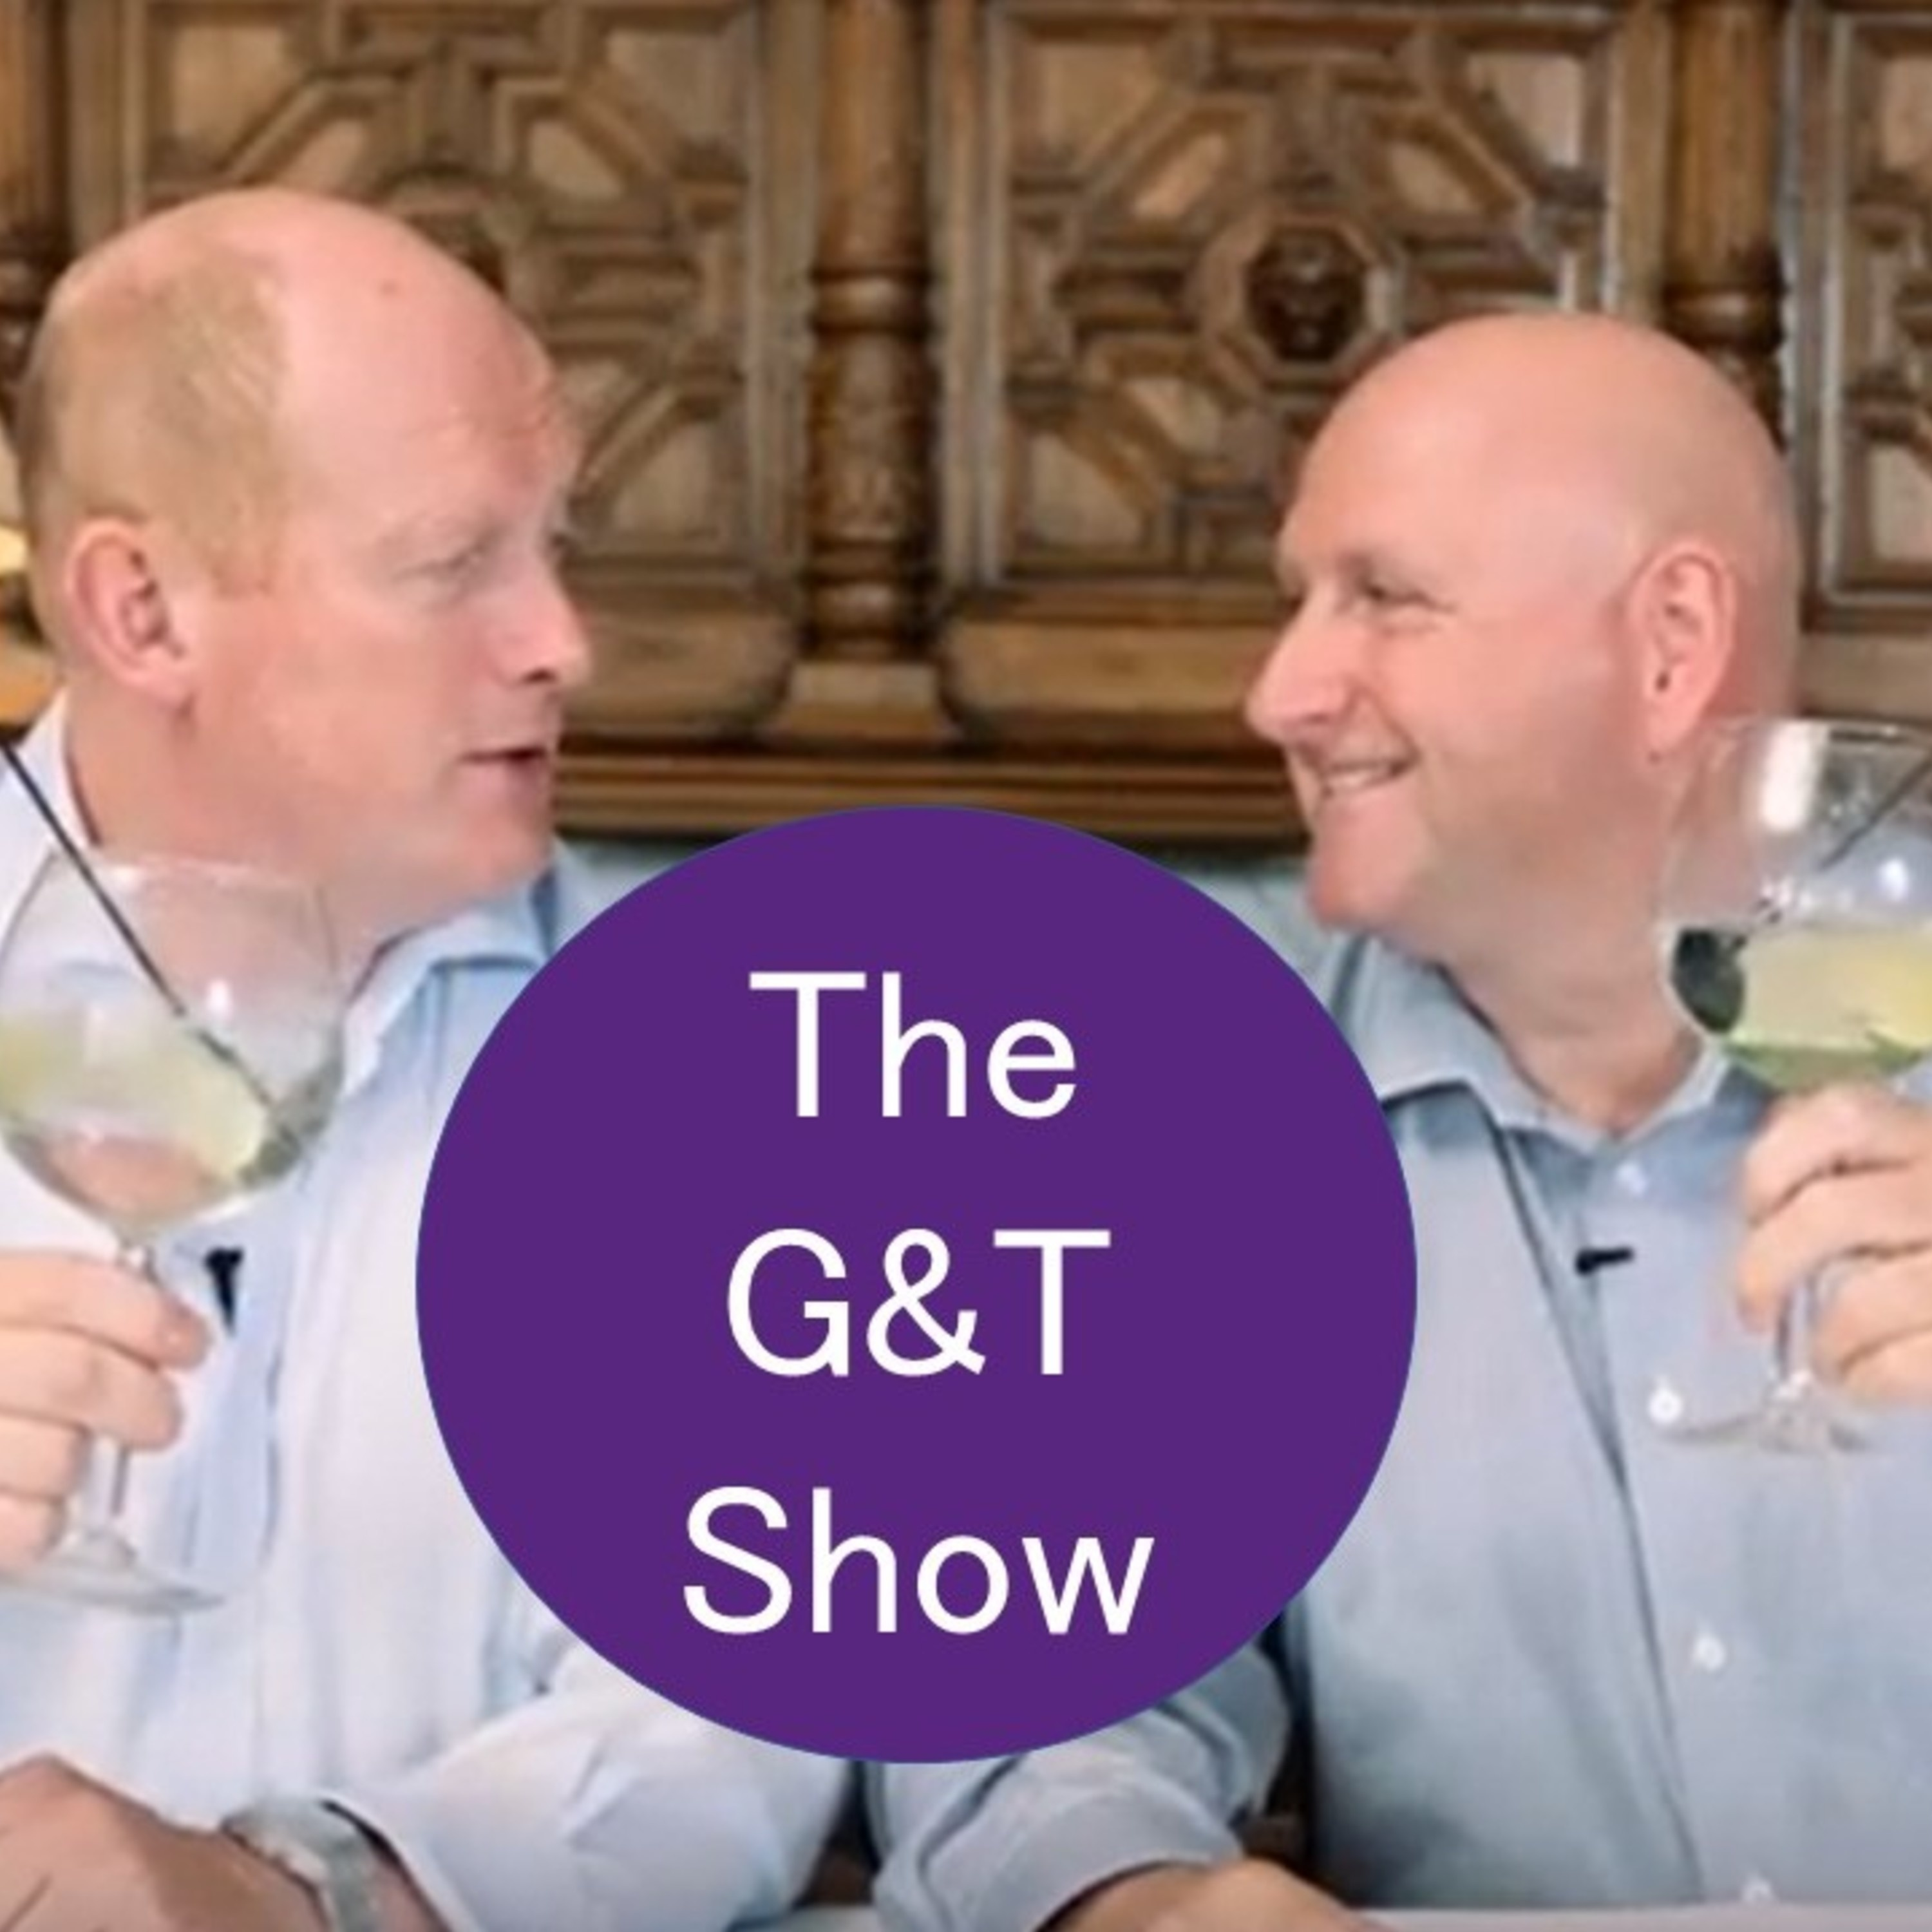 GBTV - G&T with Guy and Terry - what have club members achieved?